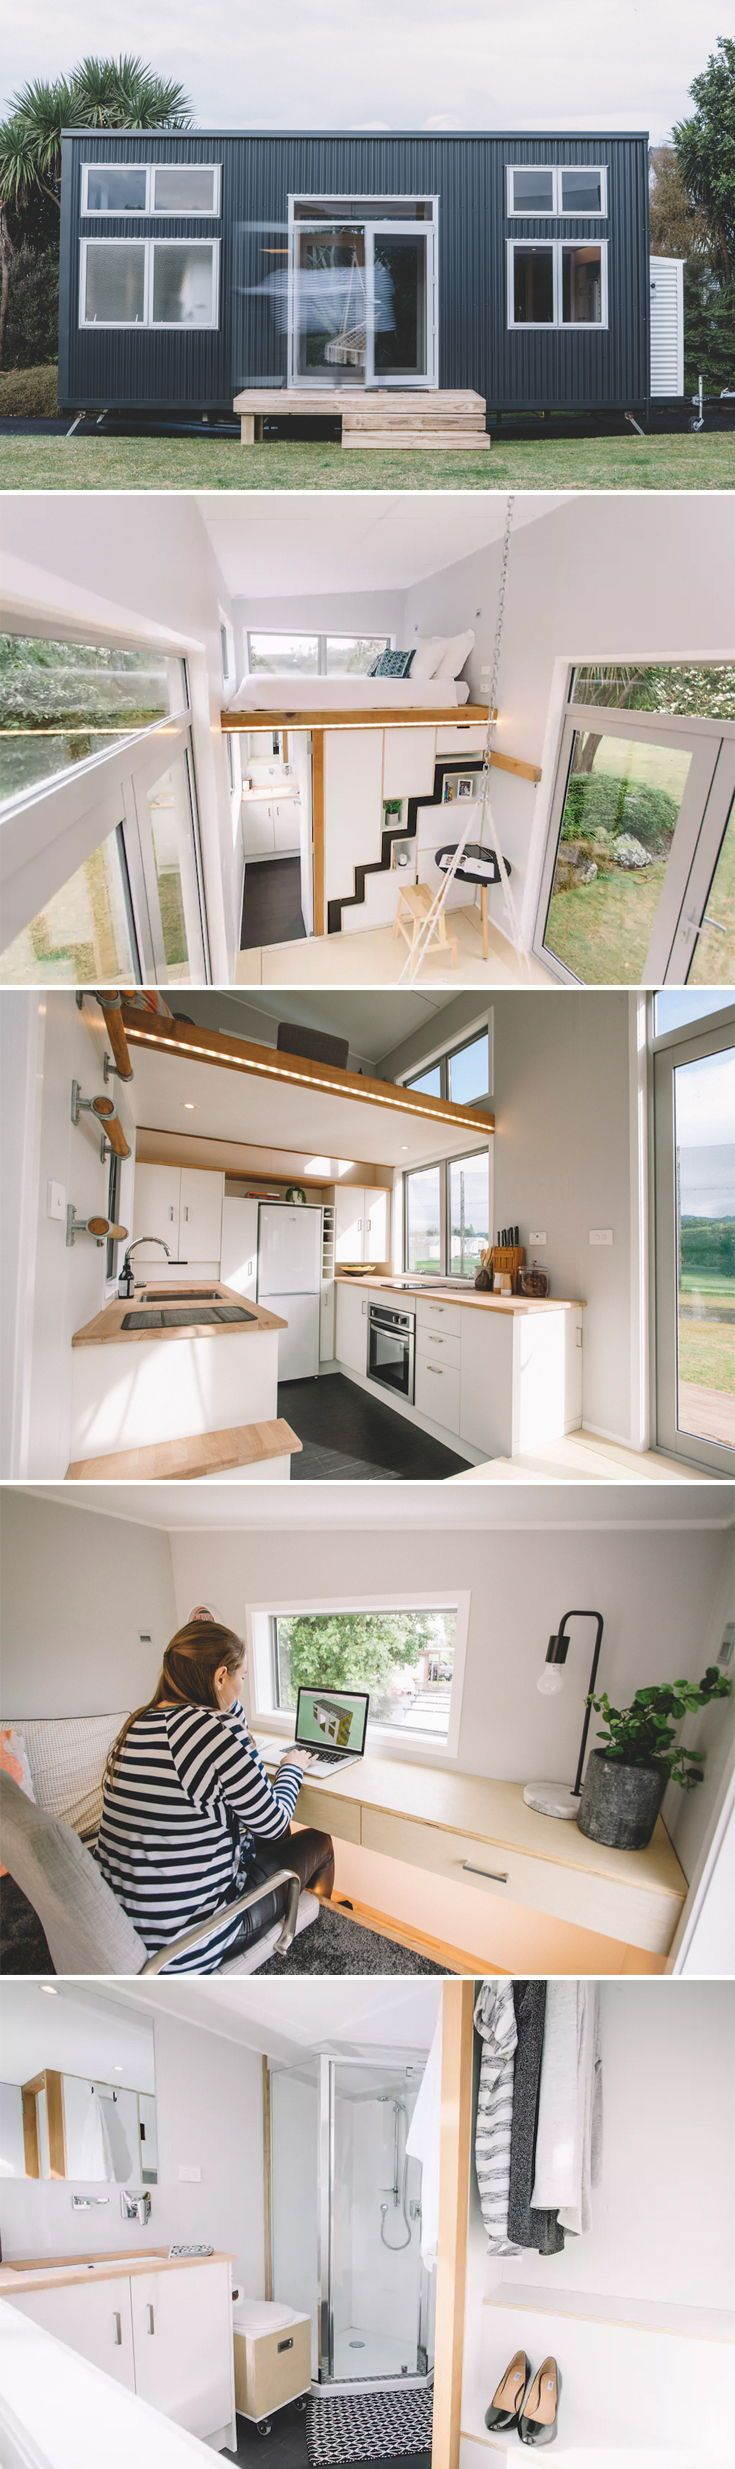 Phenomenal Millennial Tiny House By Build Tiny Tiny House In The Best Image Libraries Weasiibadanjobscom